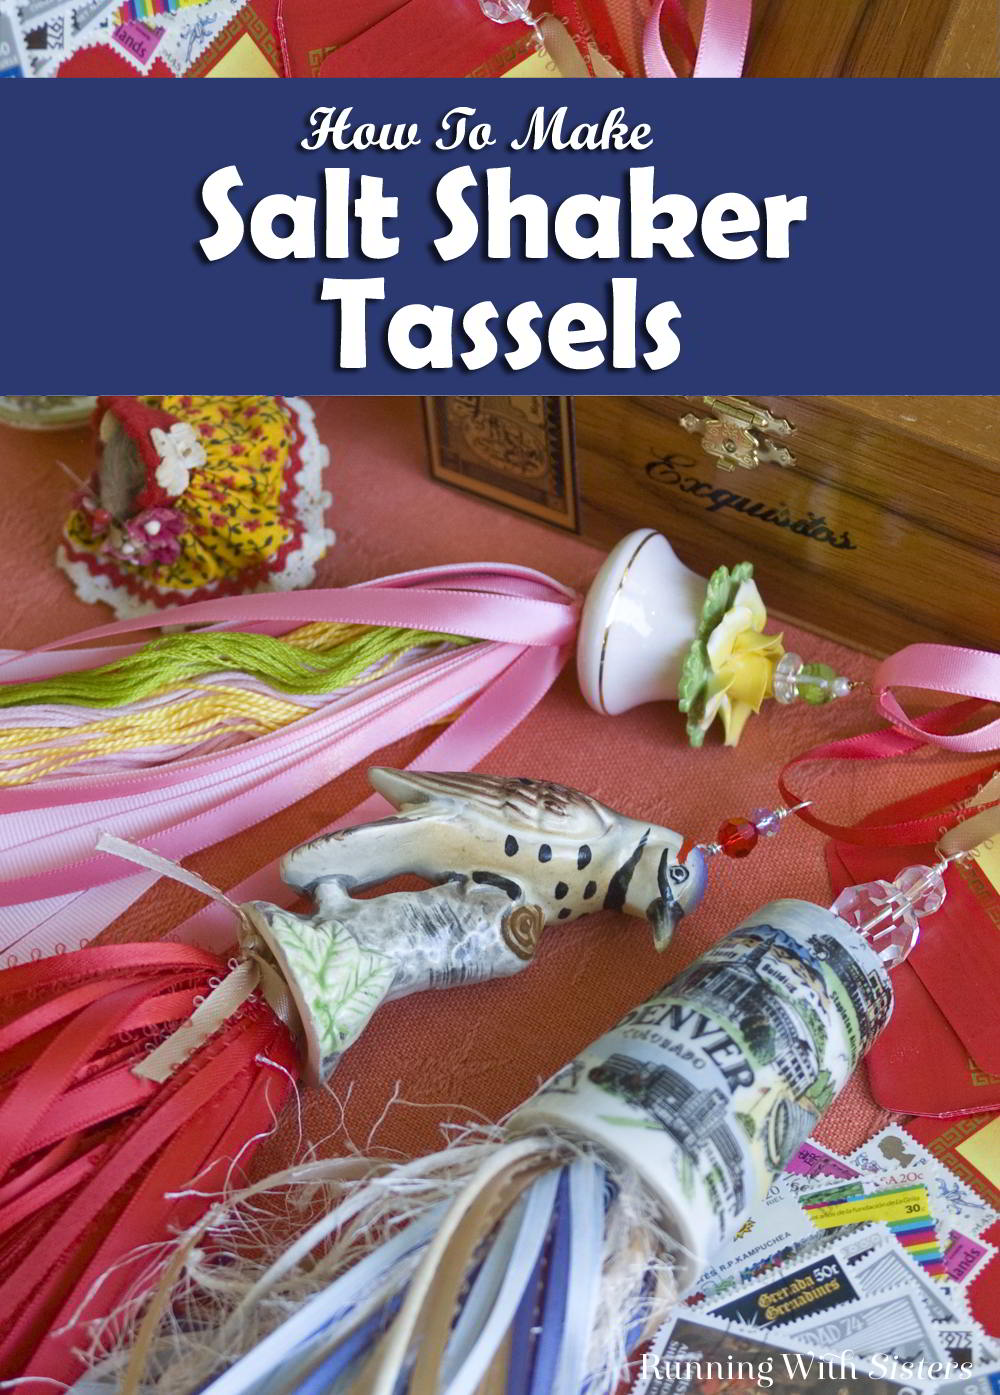 Make a salt shaker tassel from flea market salt shaker! It's easy. We'll show you how to turn a single salt or pepper shaker into a chic tassel.